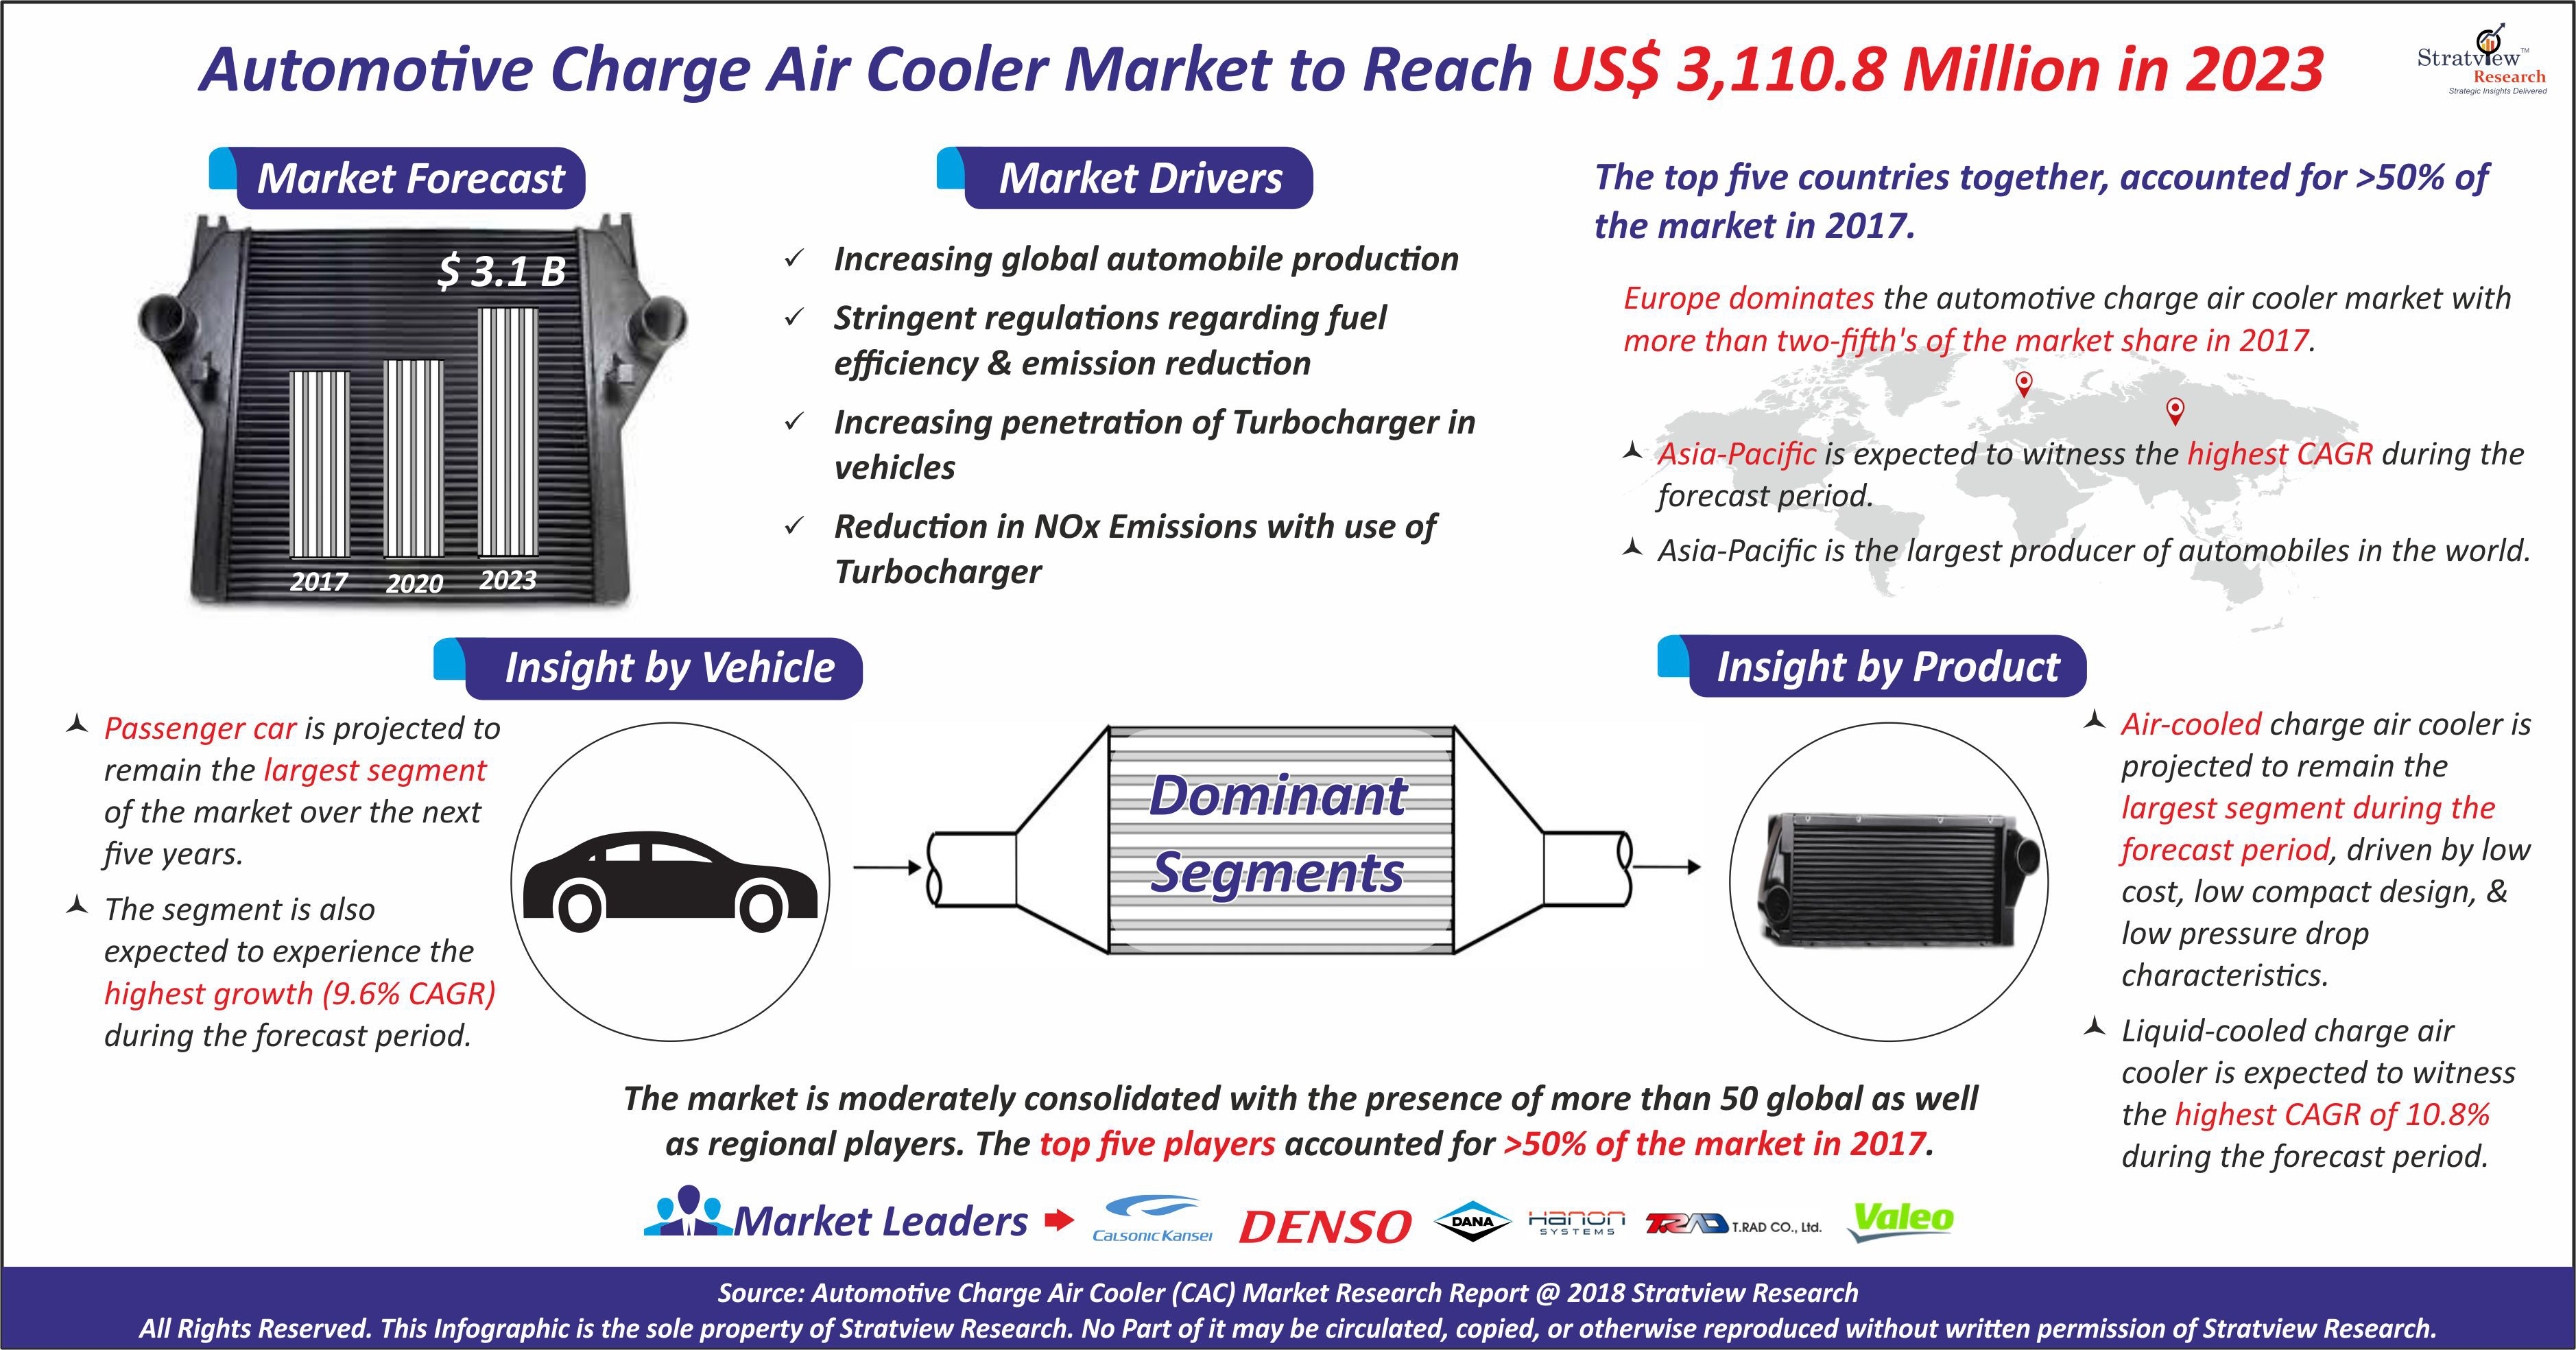 Automotive Charge Air Cooler Market